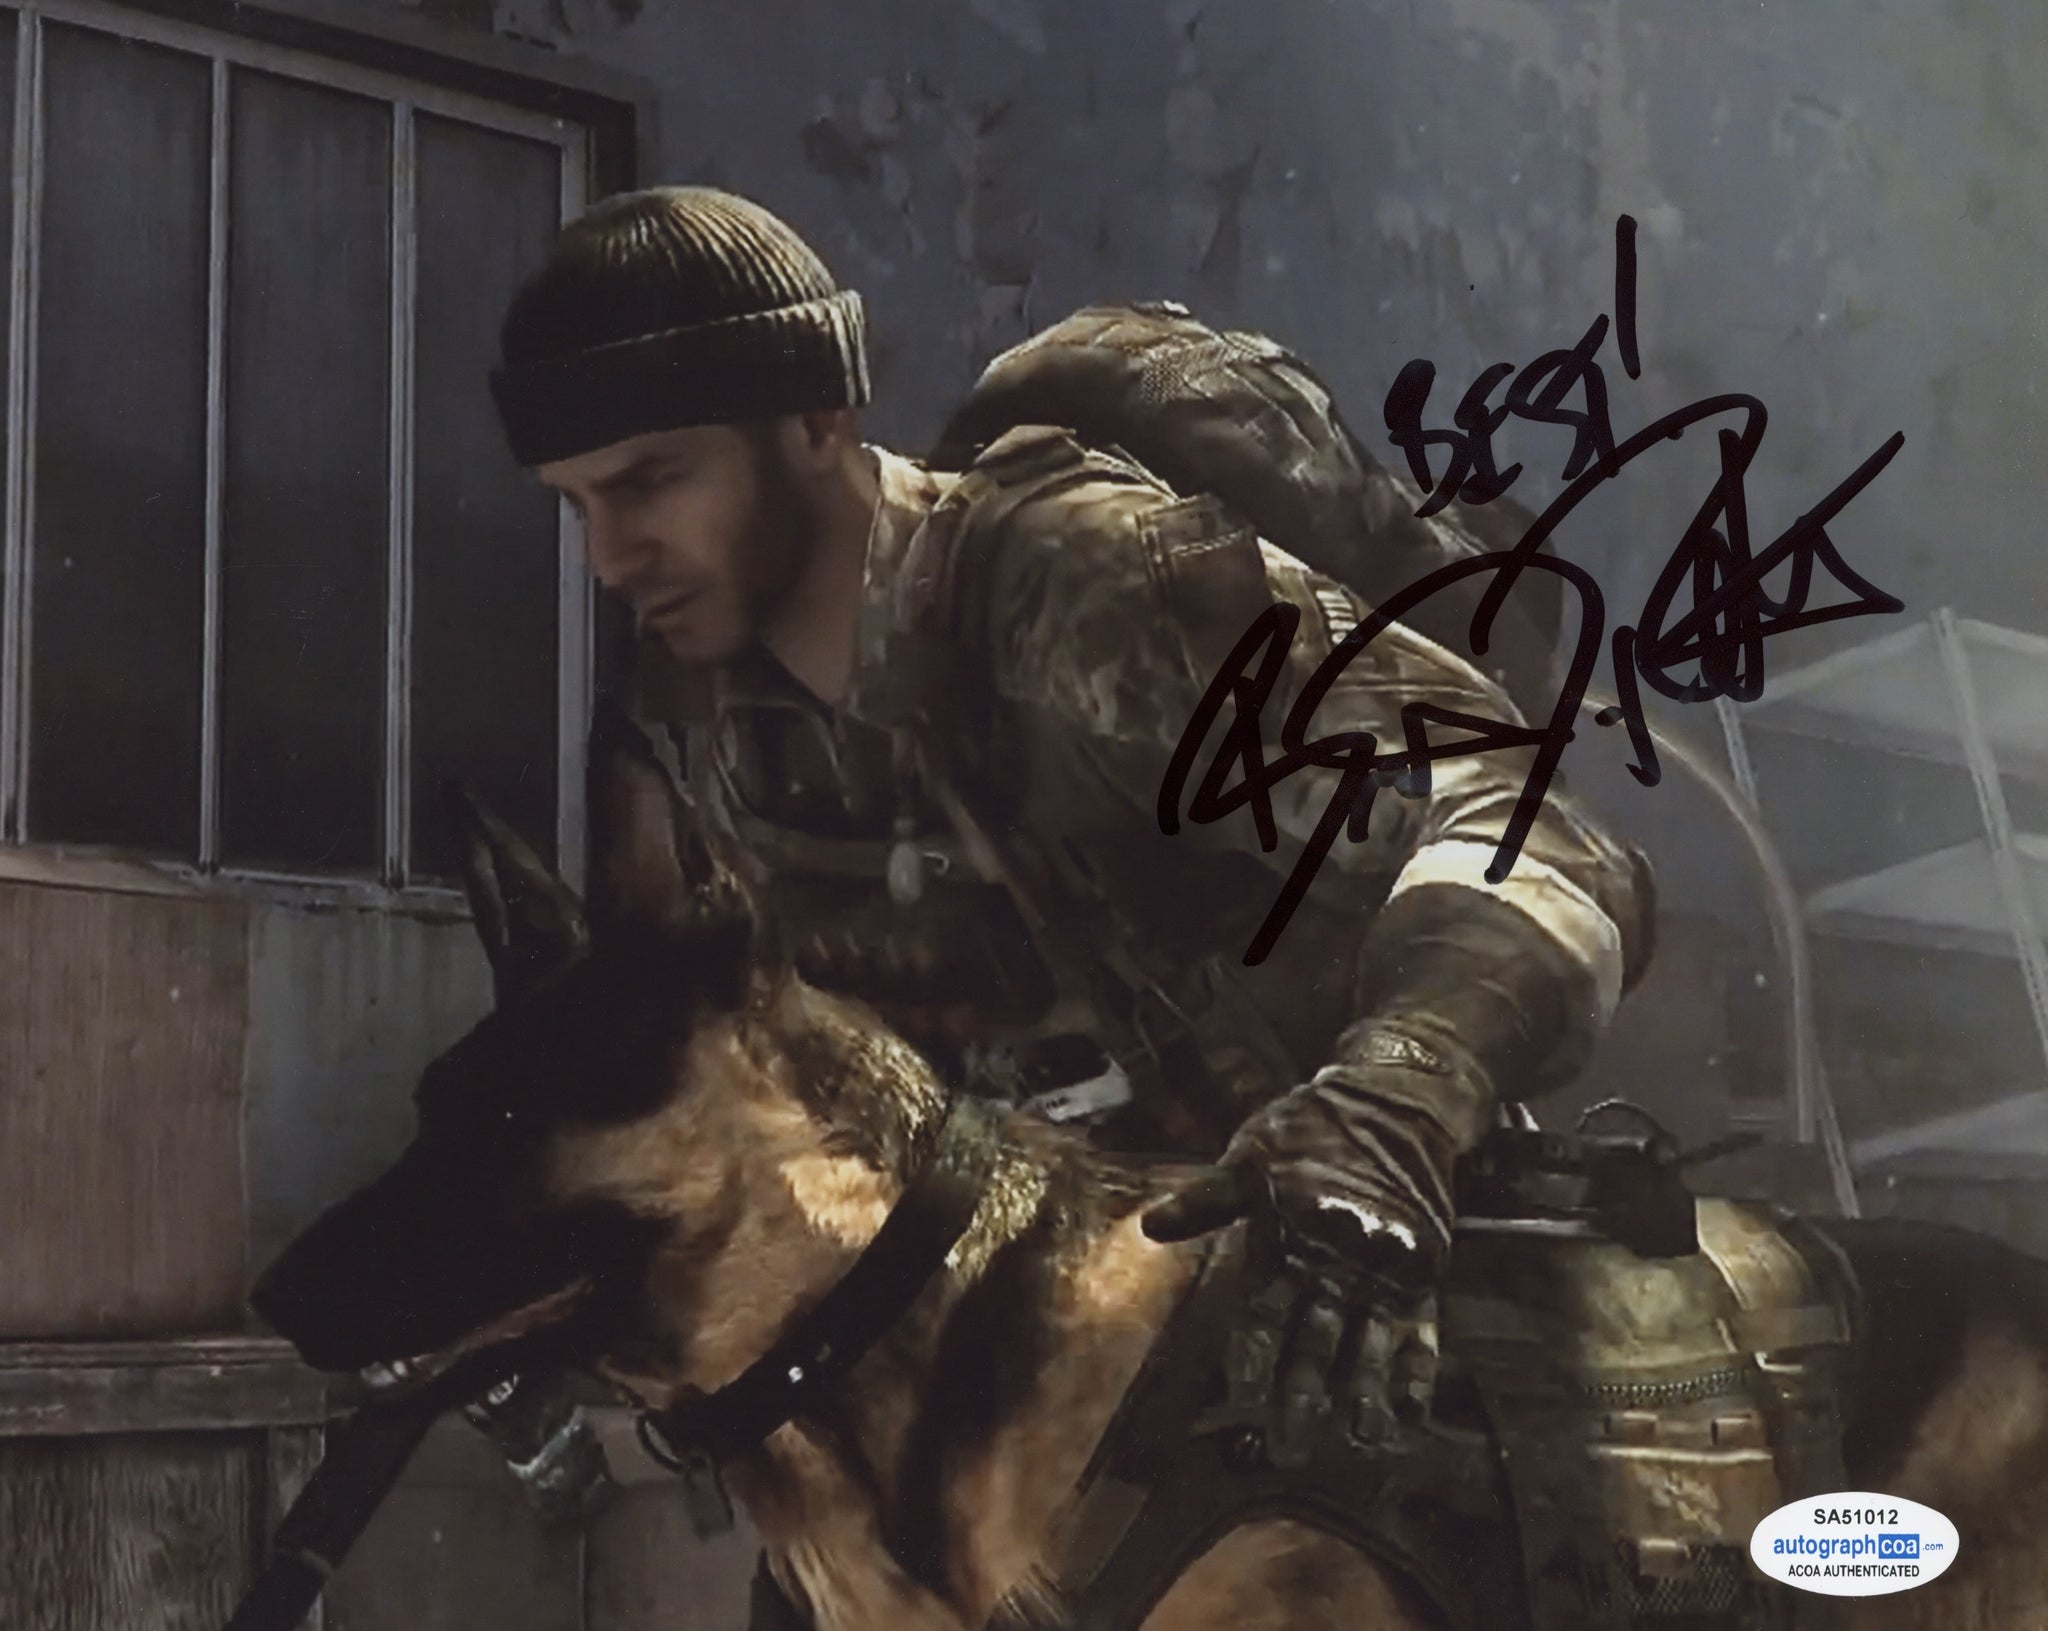 Brandon Routh Call of Duty Signed Autograph 8x10 Photo ACOA